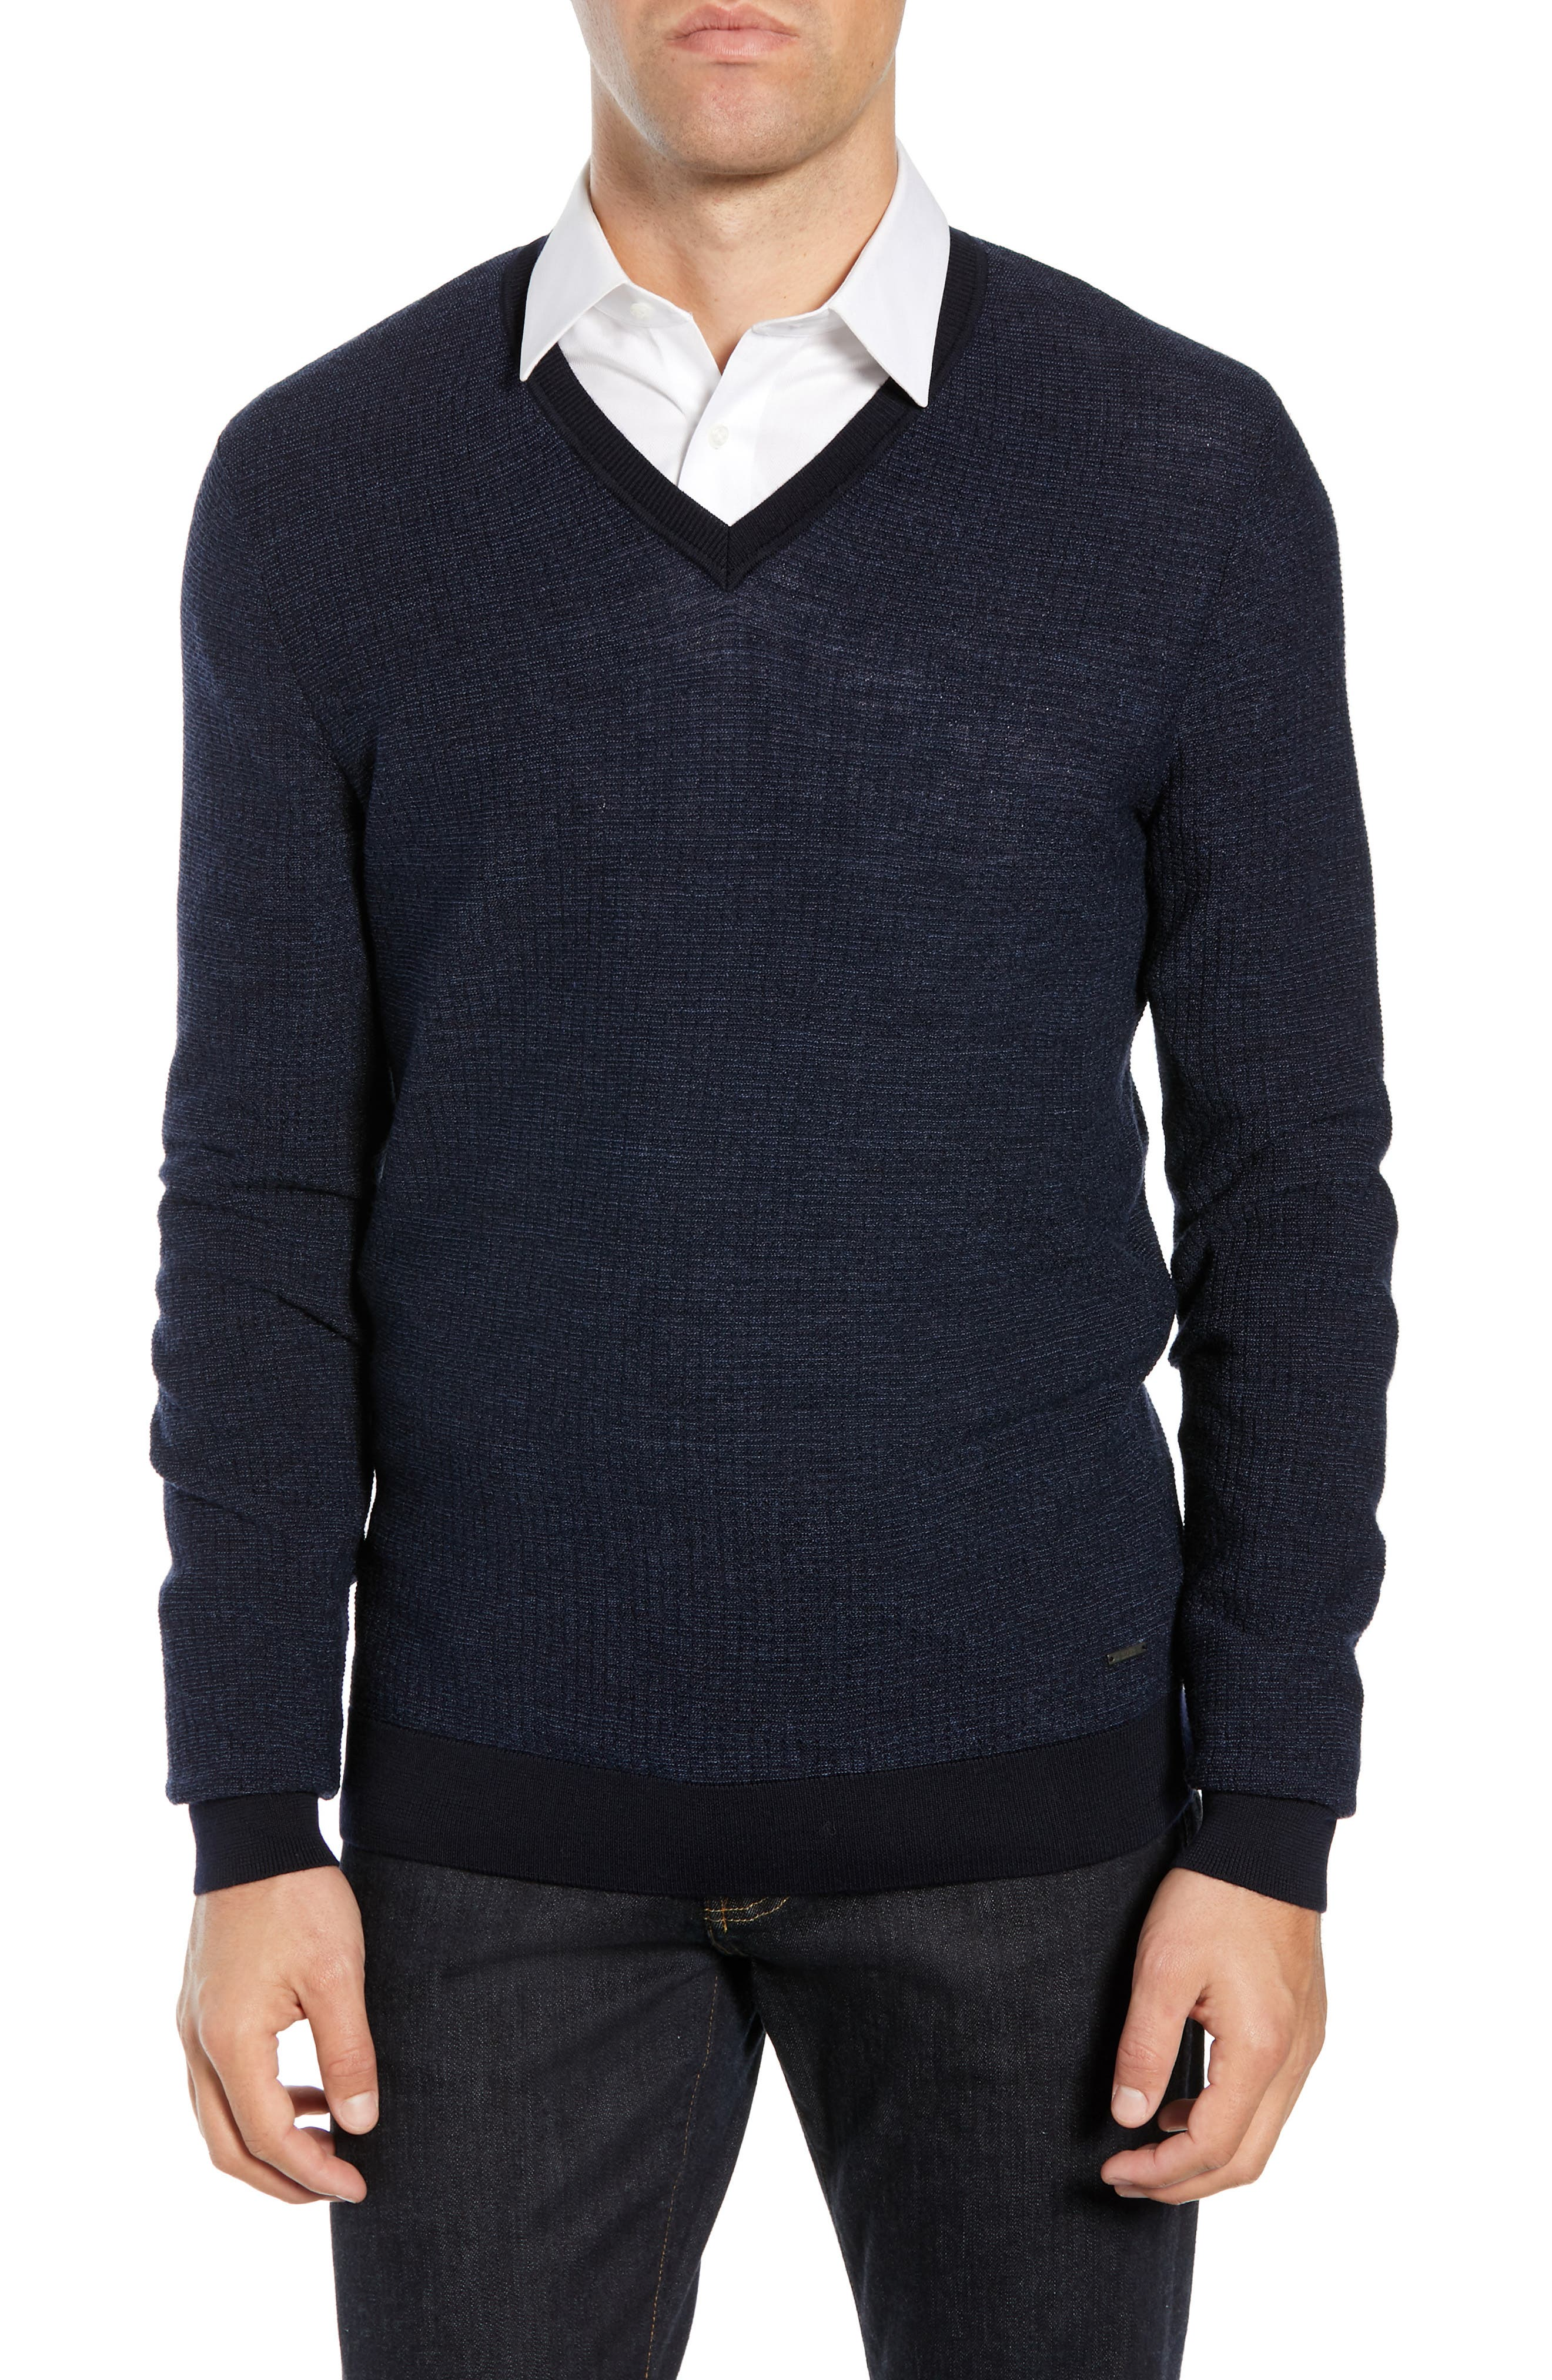 Emauro Mouline V-Neck Slim Fit Sweater,                             Main thumbnail 1, color,                             BLUE